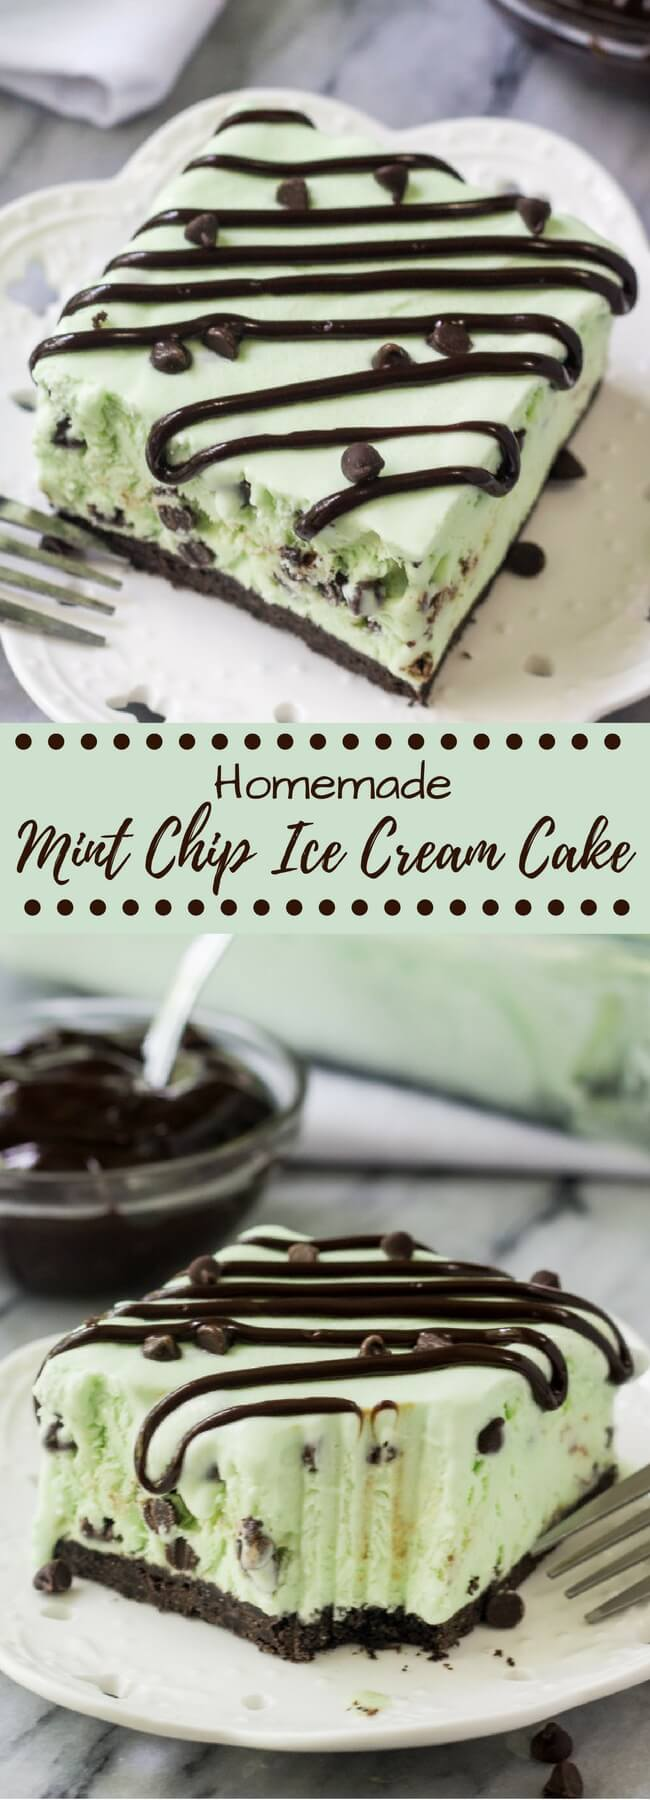 No Churn Mint Chip Ice Cream Cake - Just so Tasty